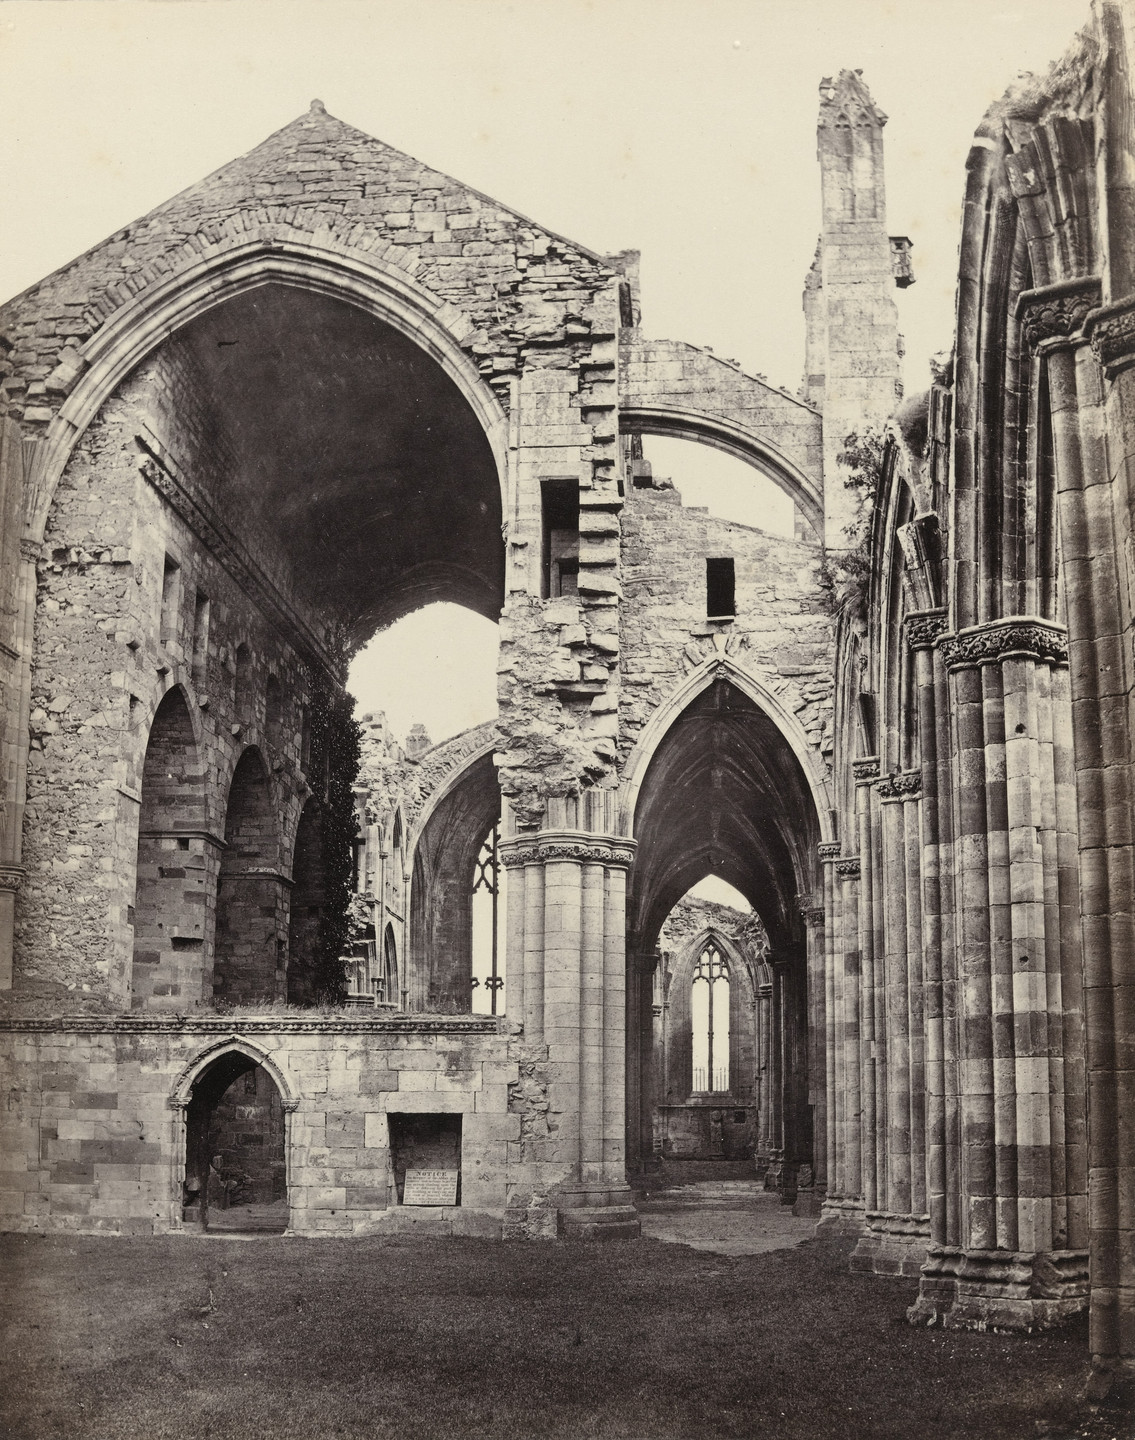 Francis Frith. Melrose Abbey, Interior. c. 1860